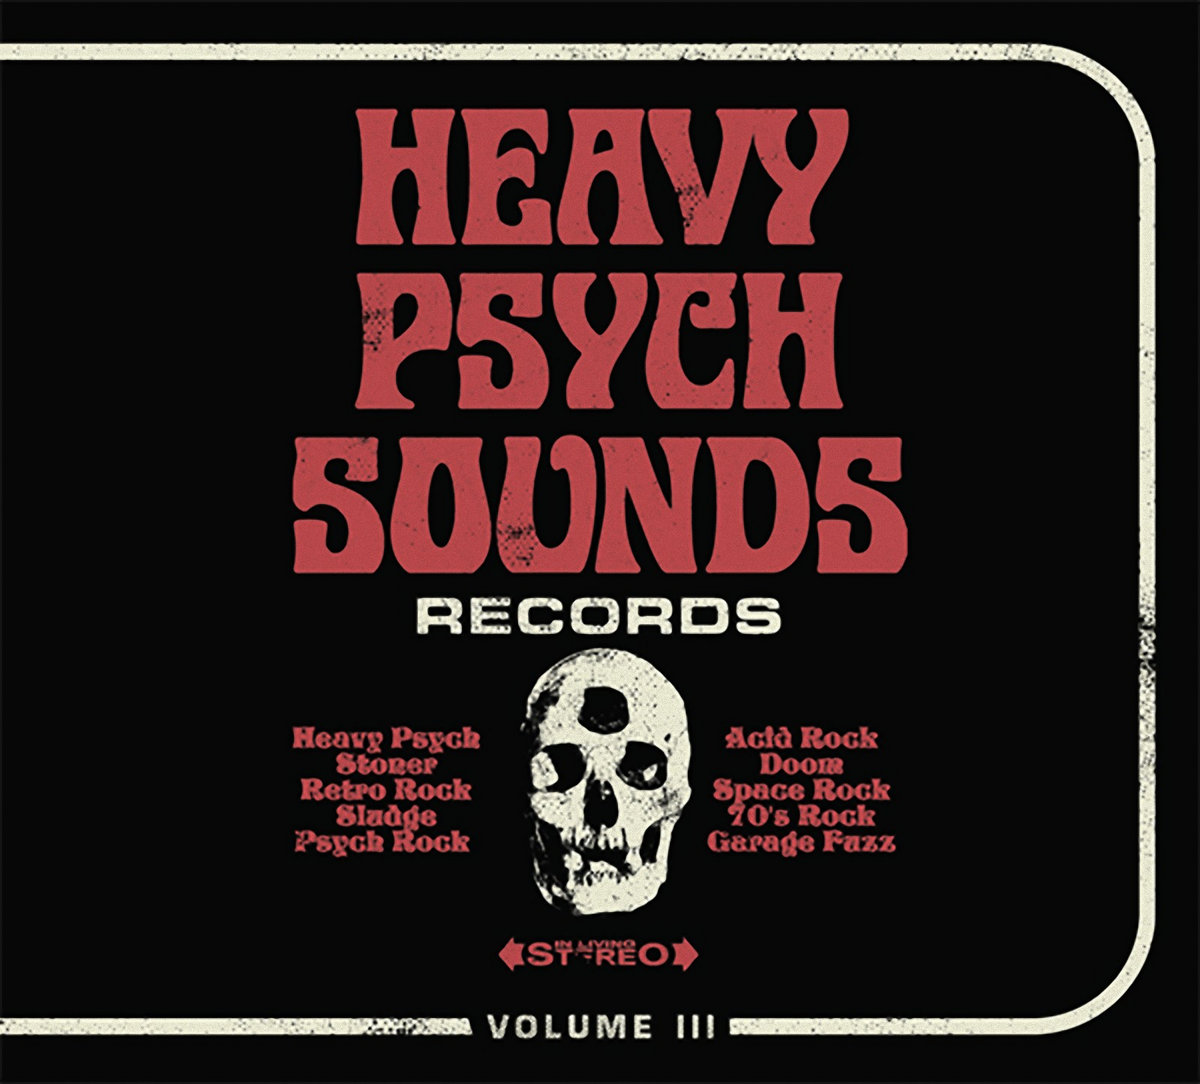 HEAVY PSYCH SOUNDS Sampler VOL III | HEAVY PSYCH SOUNDS Records